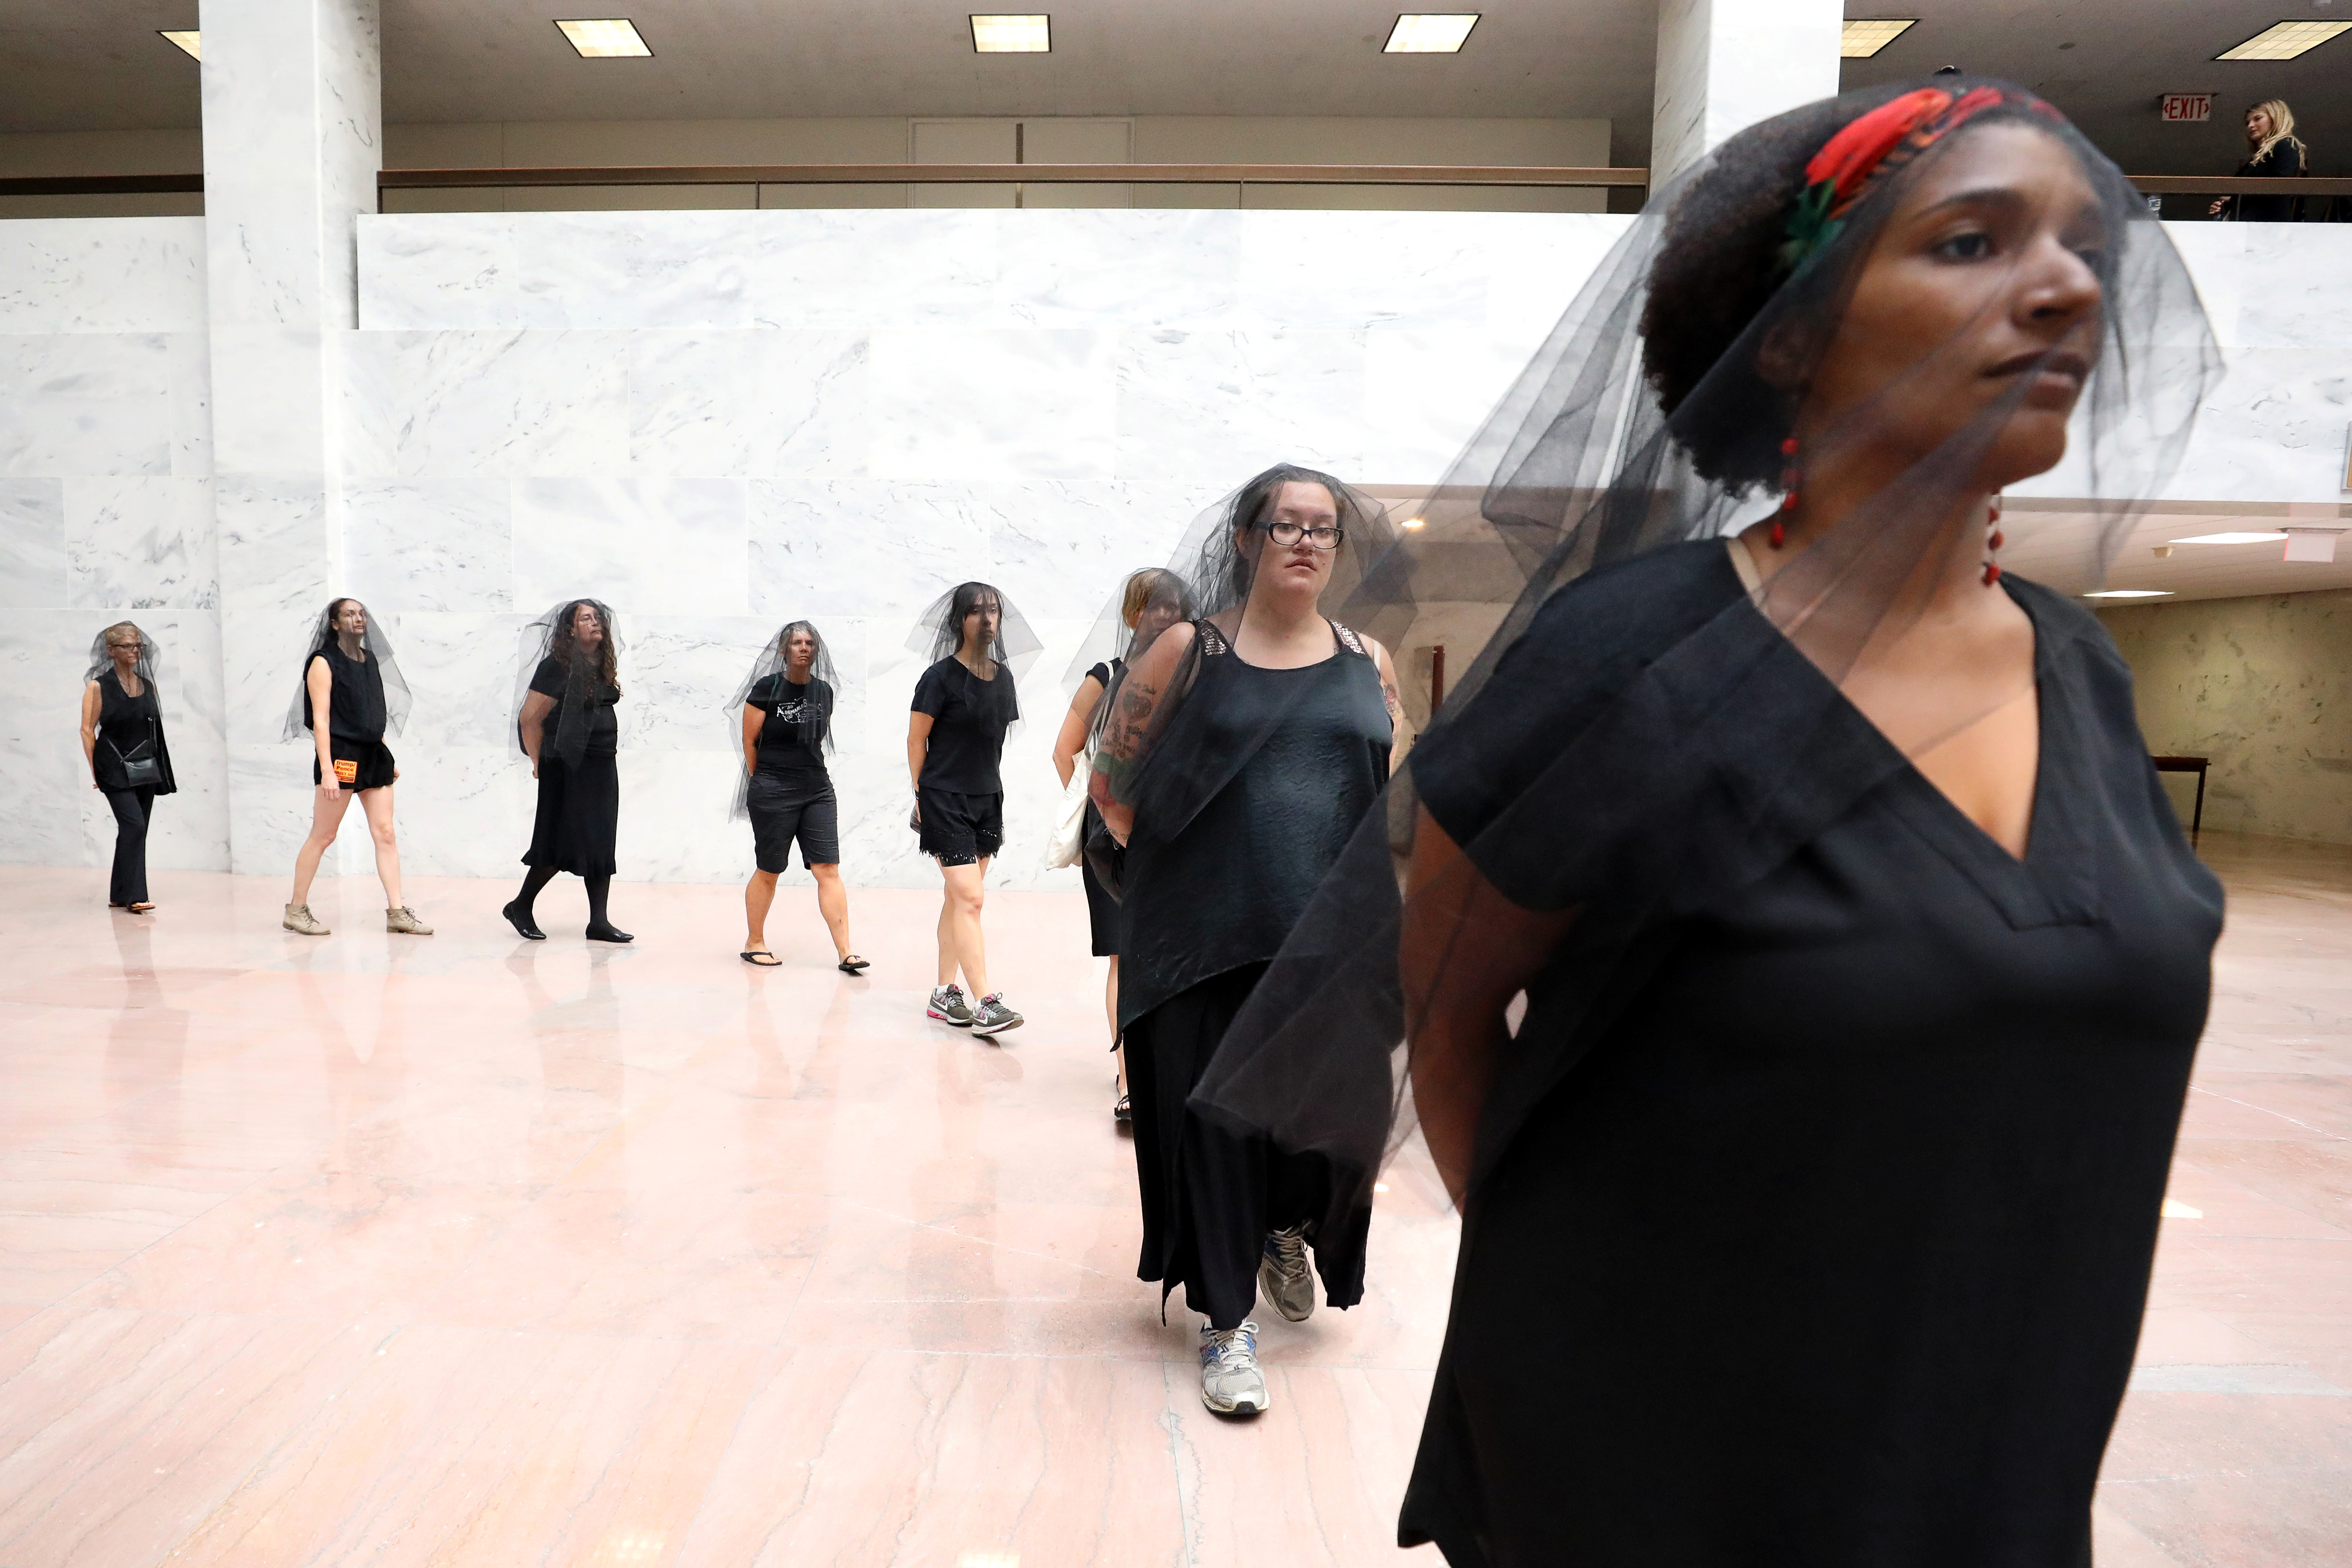 Protesters wearing black veils leave the Hart Senate Office Building on the fourth day of Senate Judiciary Committee confirmation hearings for U.S. Supreme Court nominee Judge Brett Kavanaugh on Capitol Hill in Washington, U.S., September 7, 2018. REUTERS/Chris Wattie